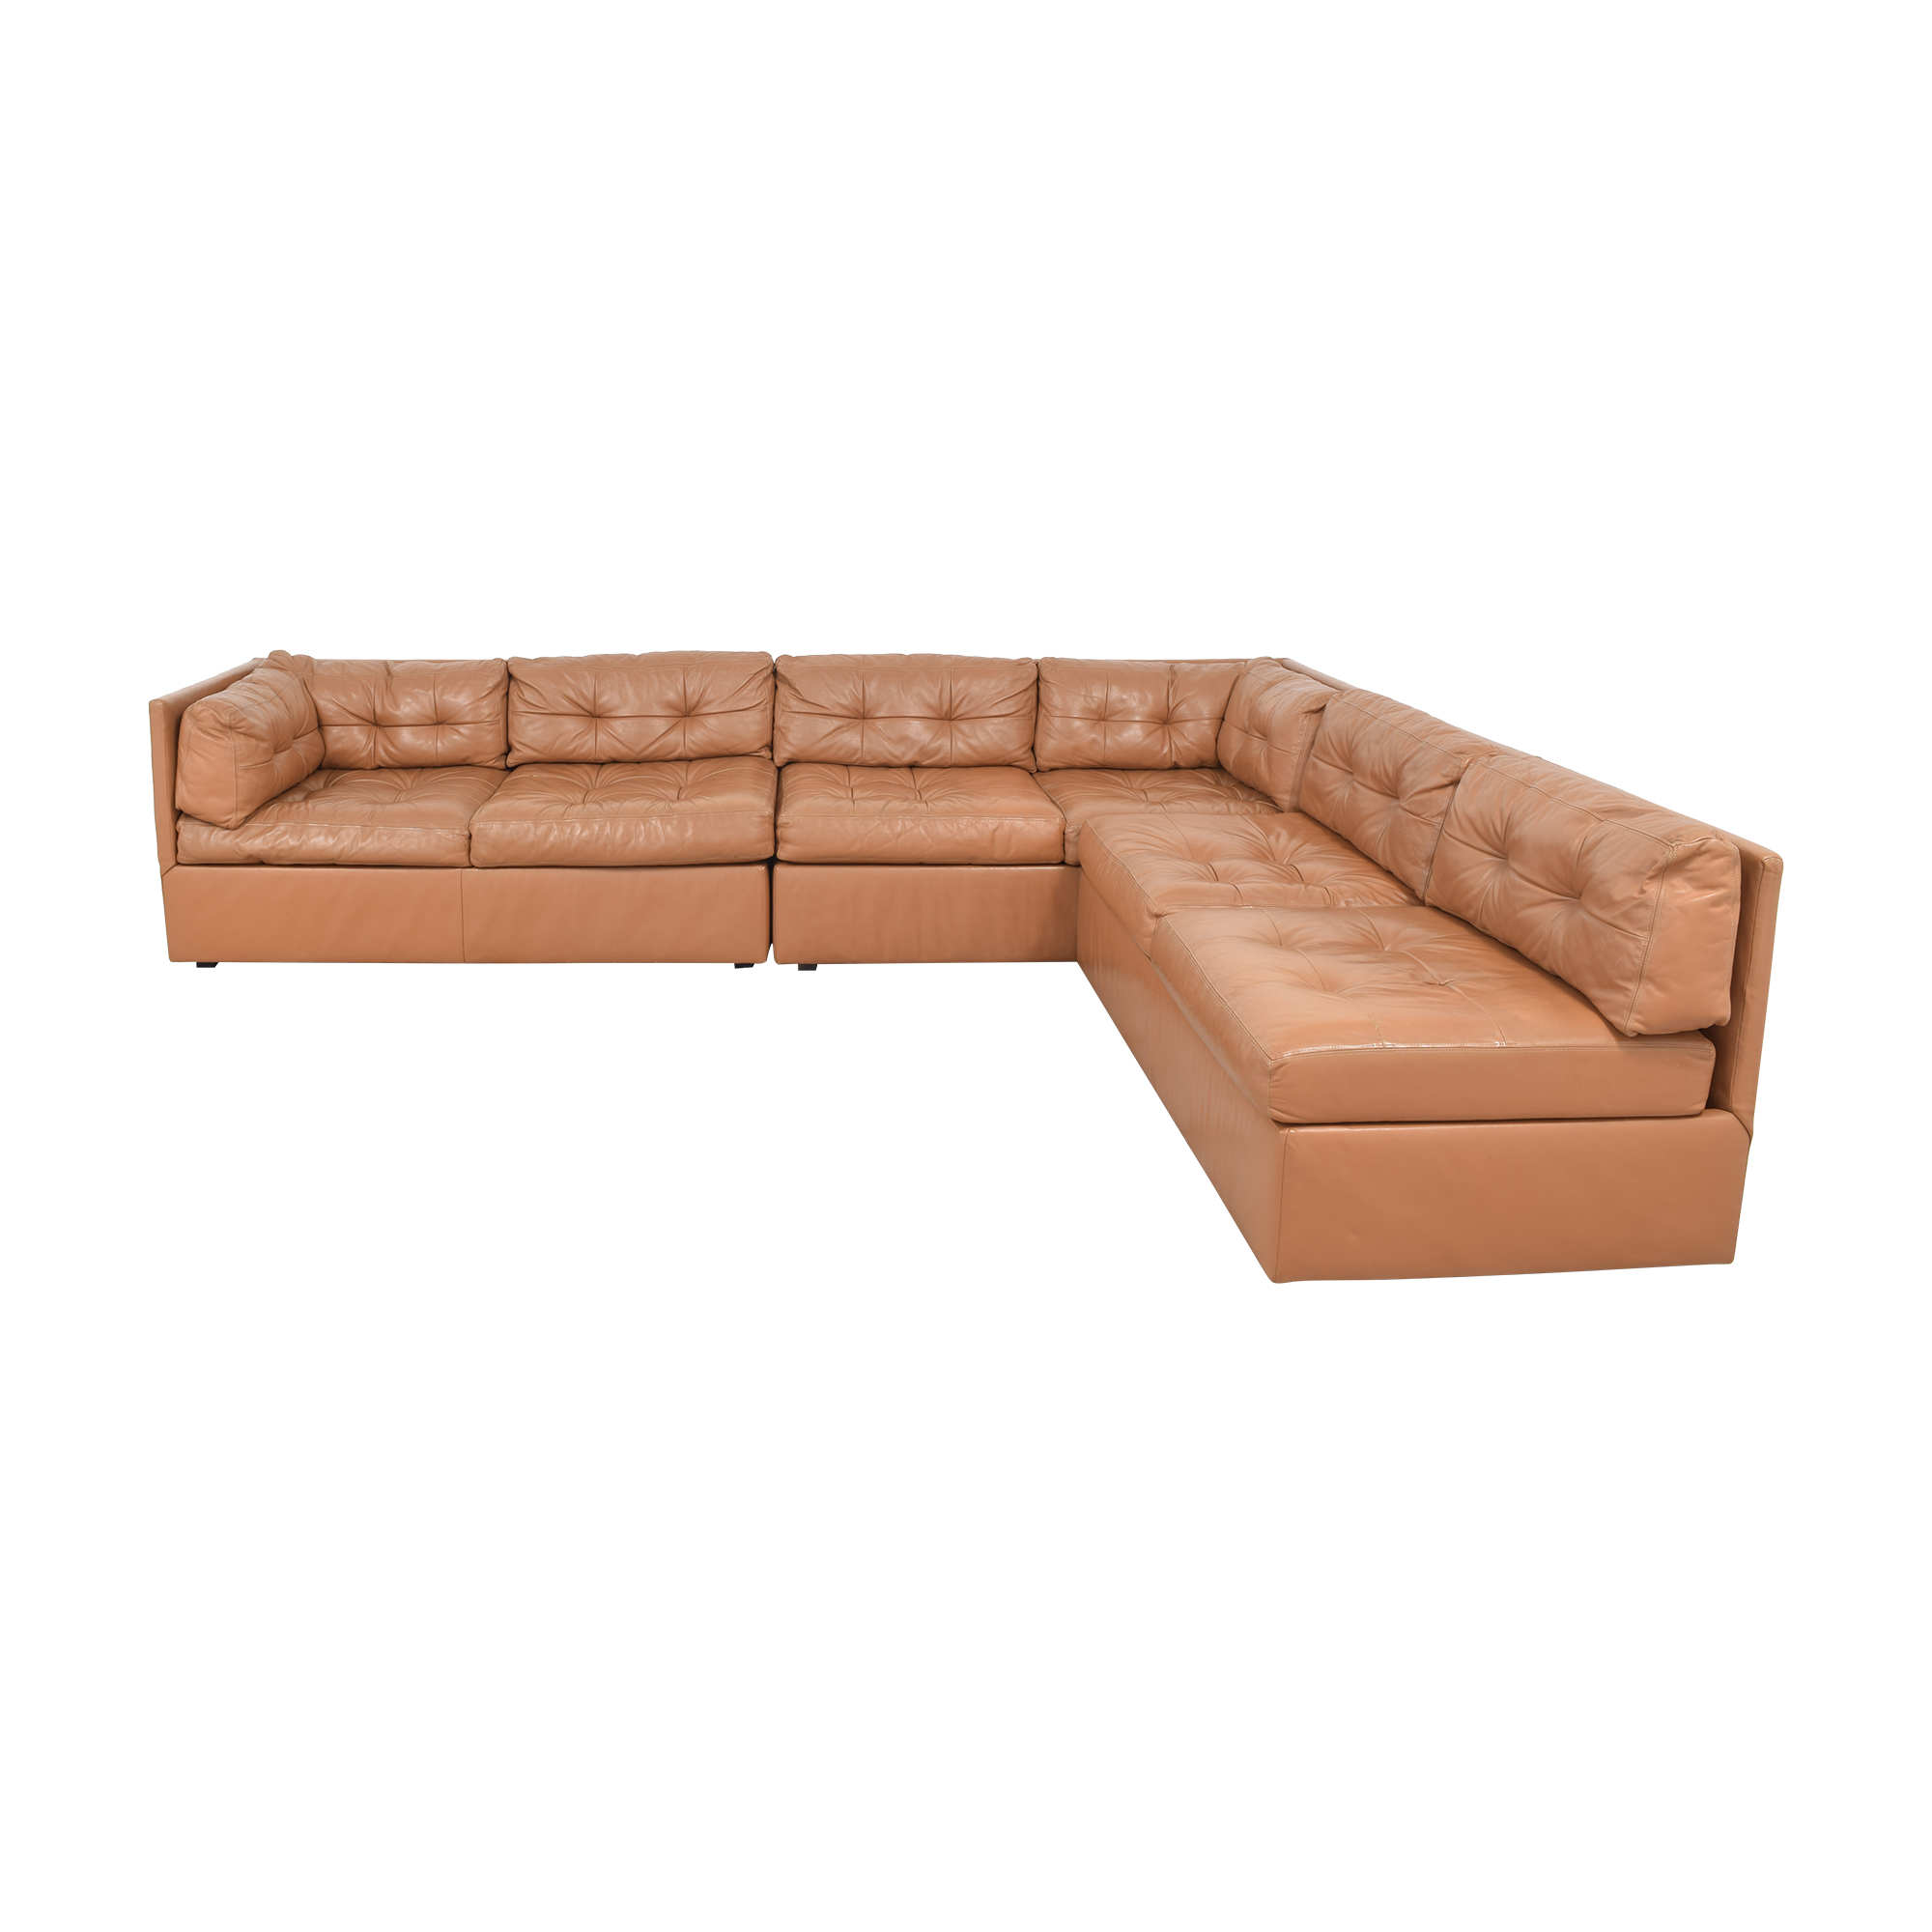 L-Shaped Sectional Sofa